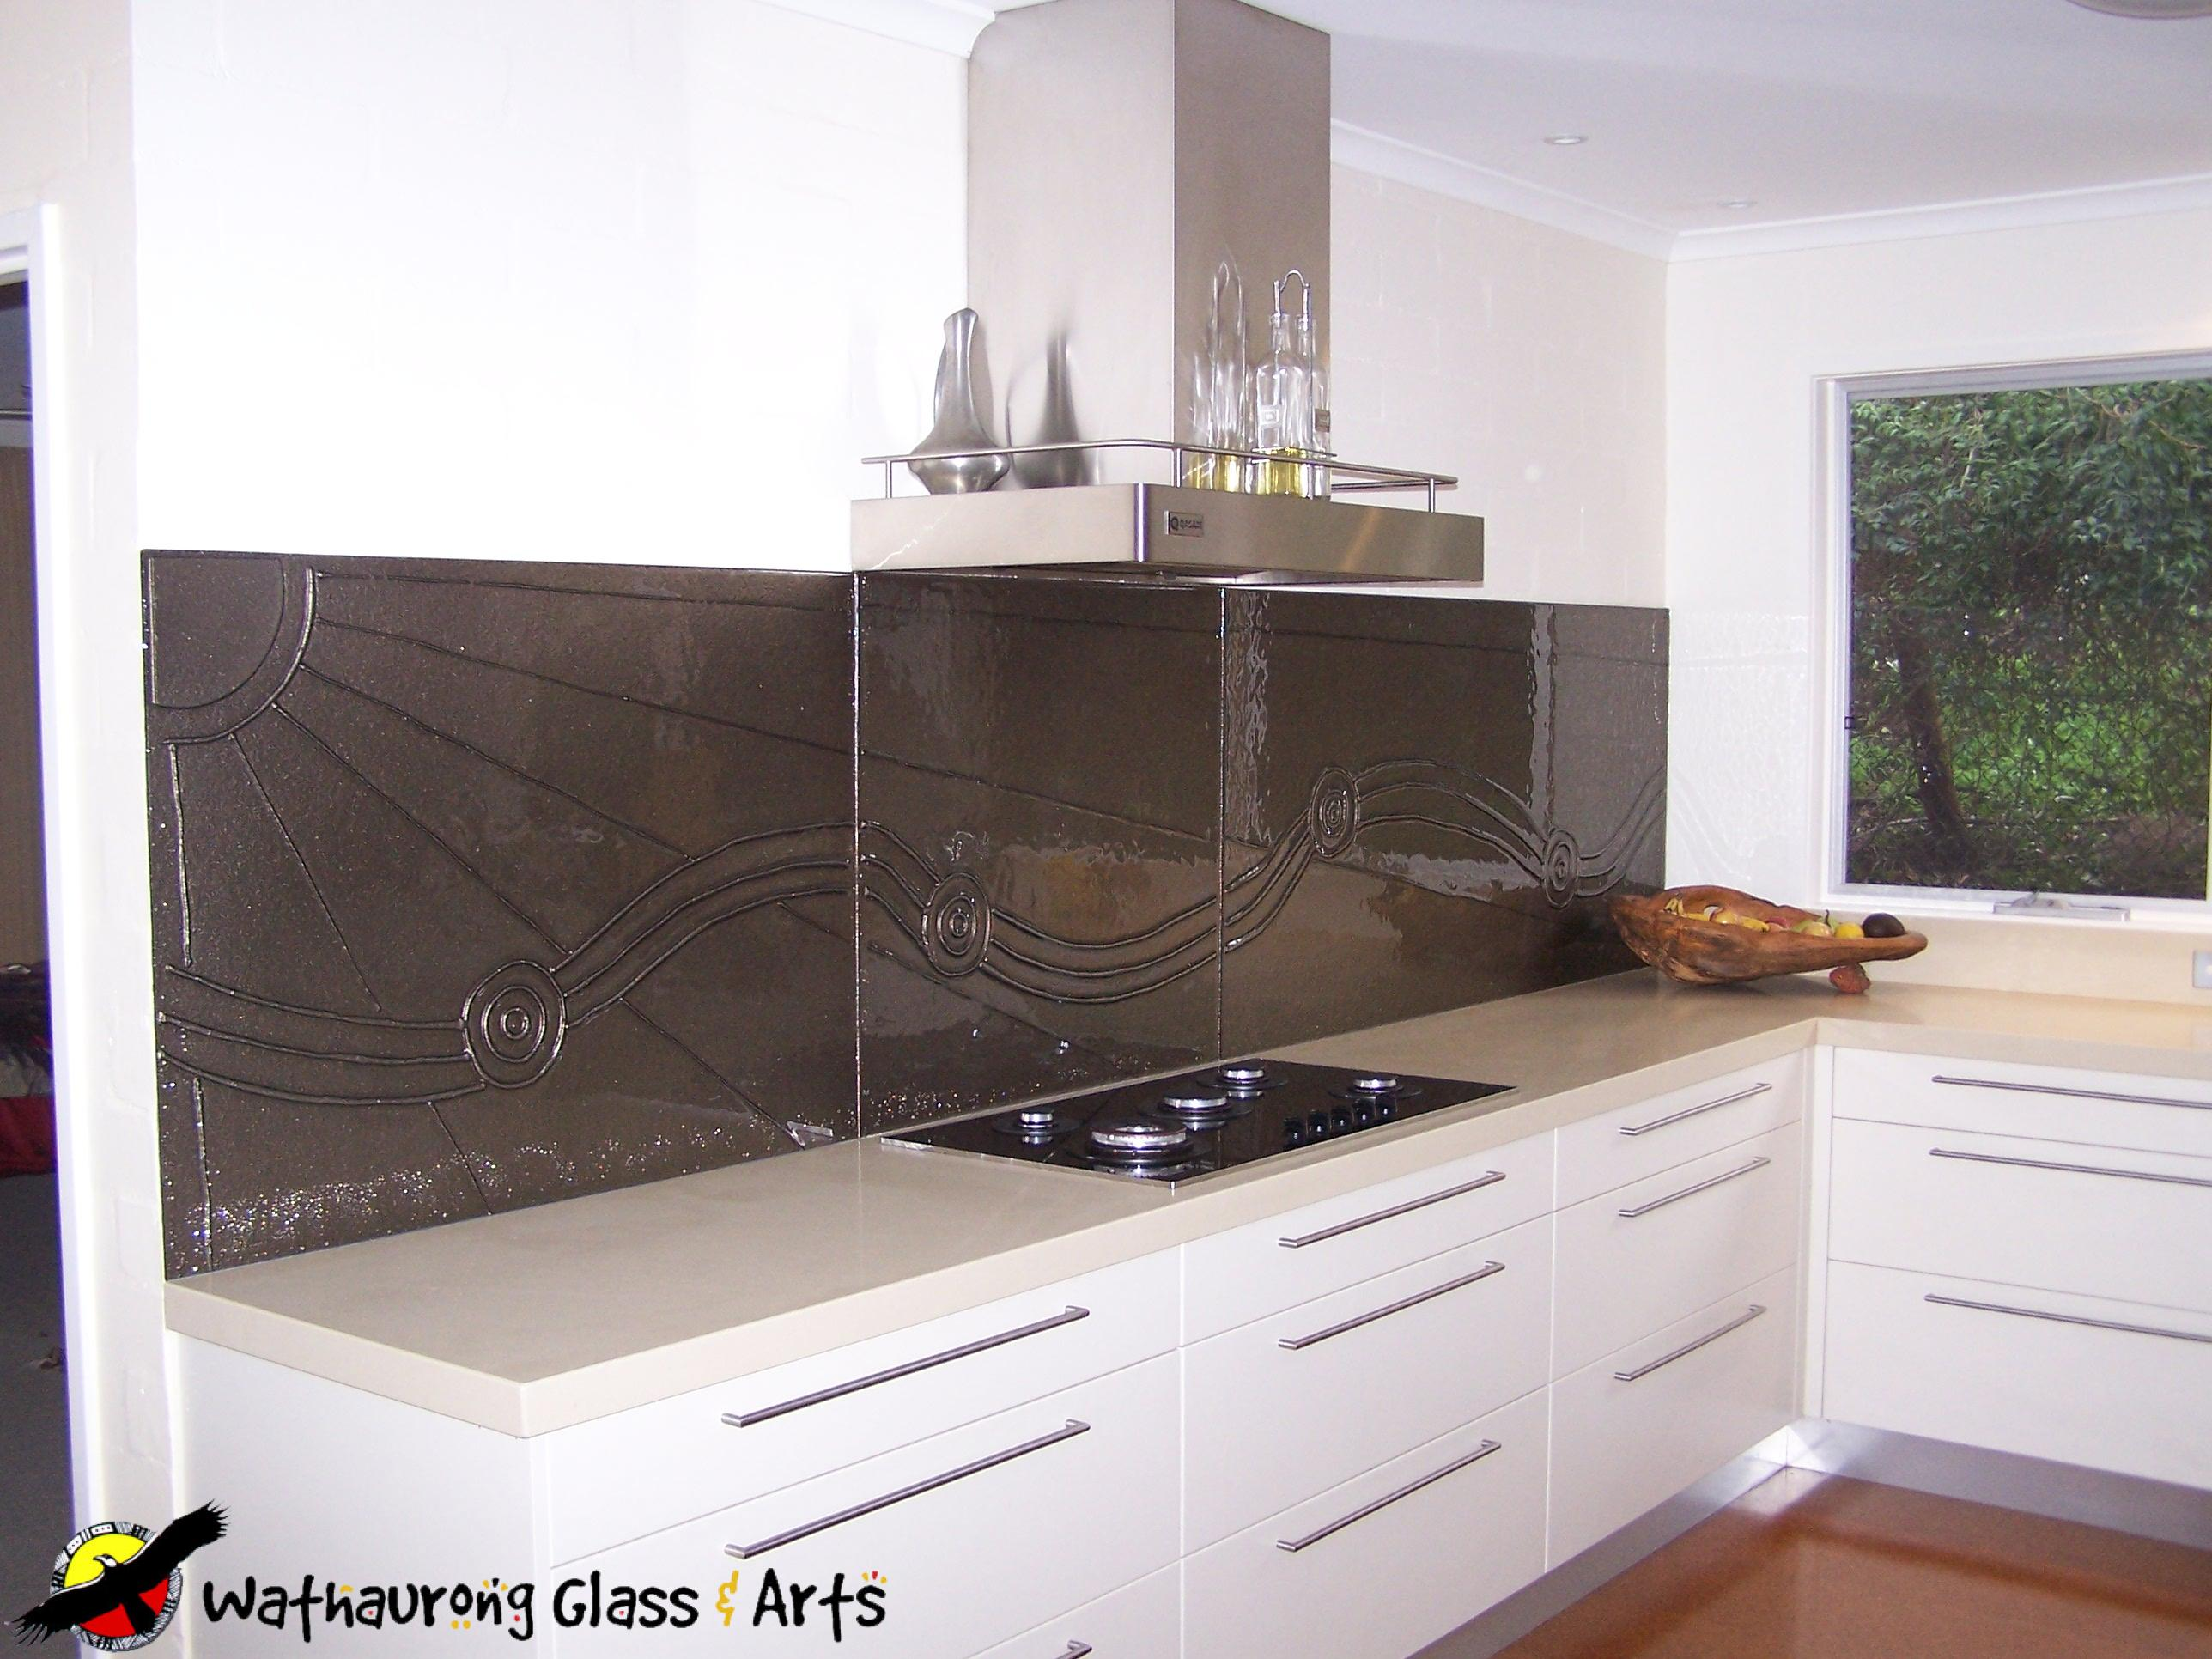 Kitchen Tiles Geelong blue splashback with curved tiles - wathaurong glass